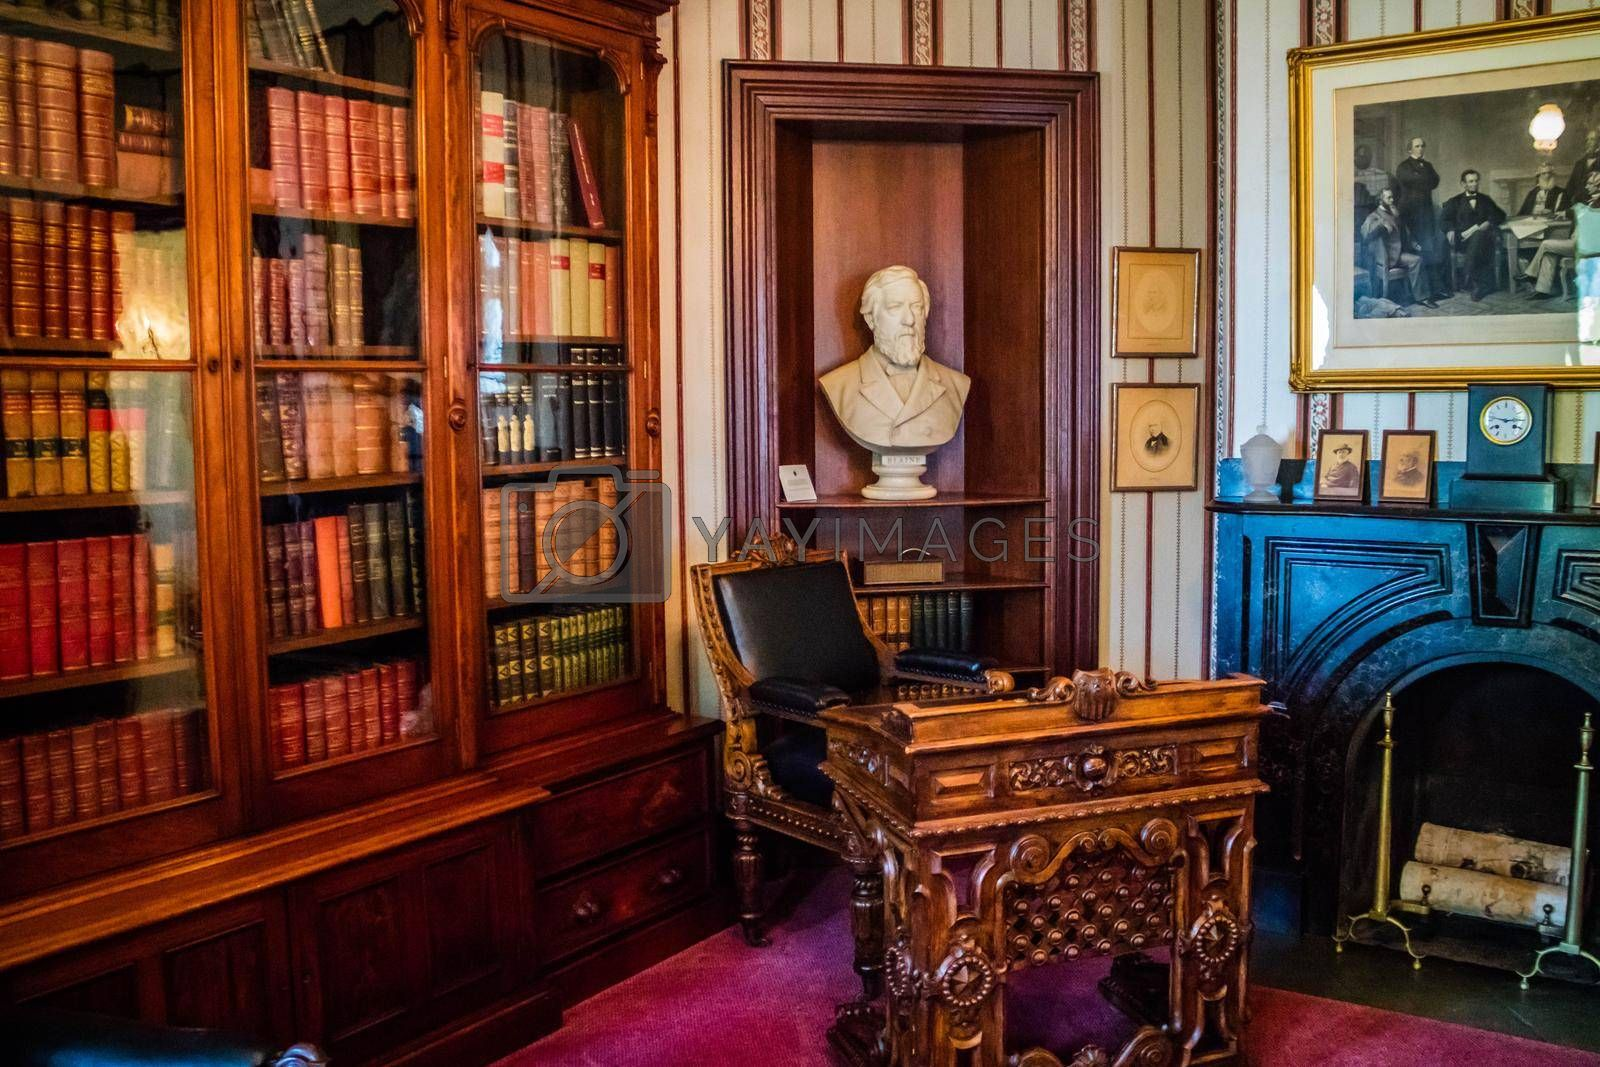 Royalty free image of Augusta, ME, USA - August 8, 2018: The study hall of Blaine's House by cherialguire